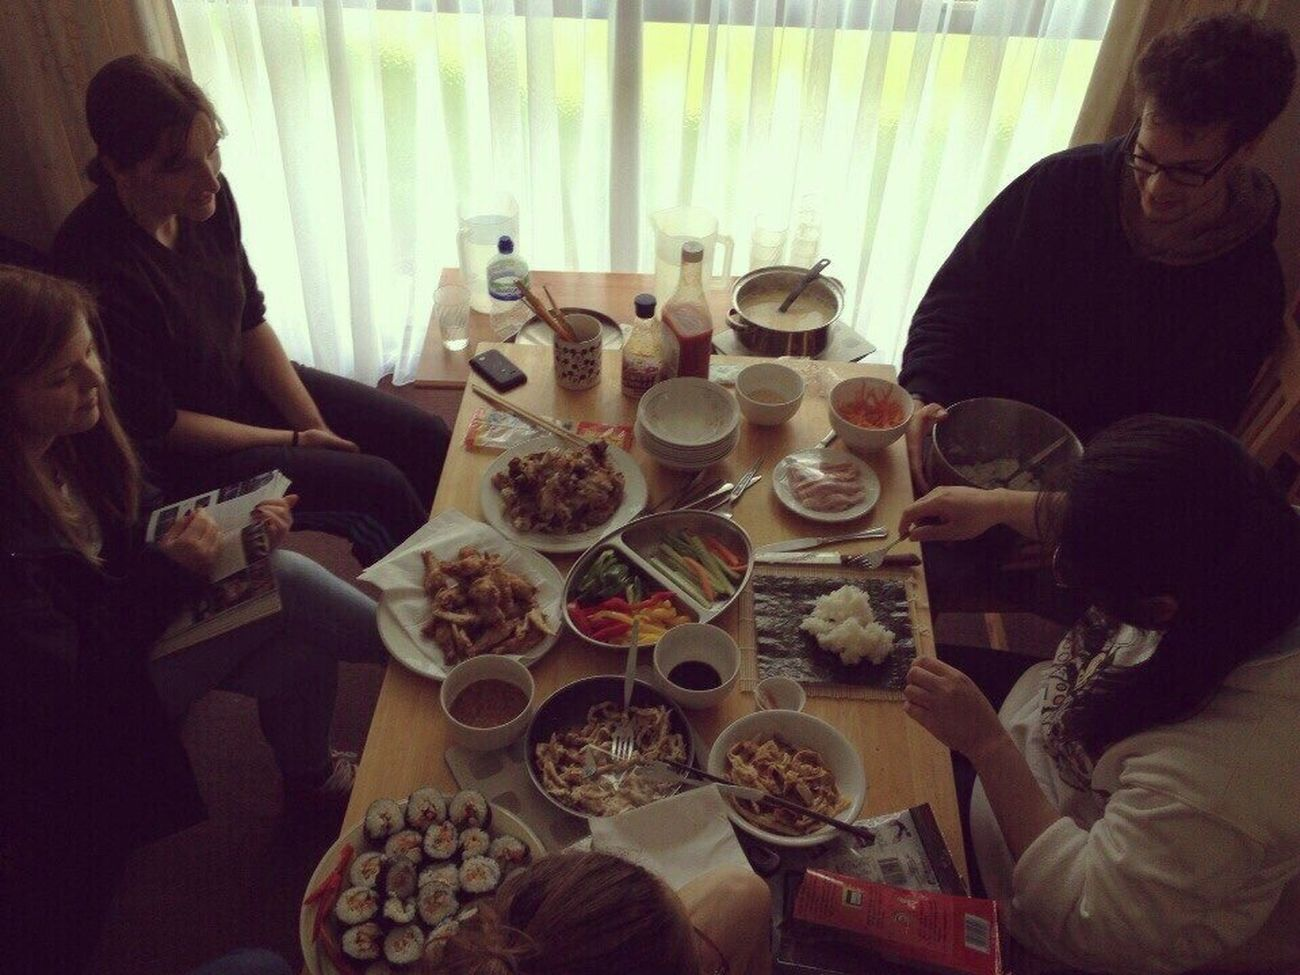 People Together Sharing Culture Food Sushi Homemade Food Homemade Nations